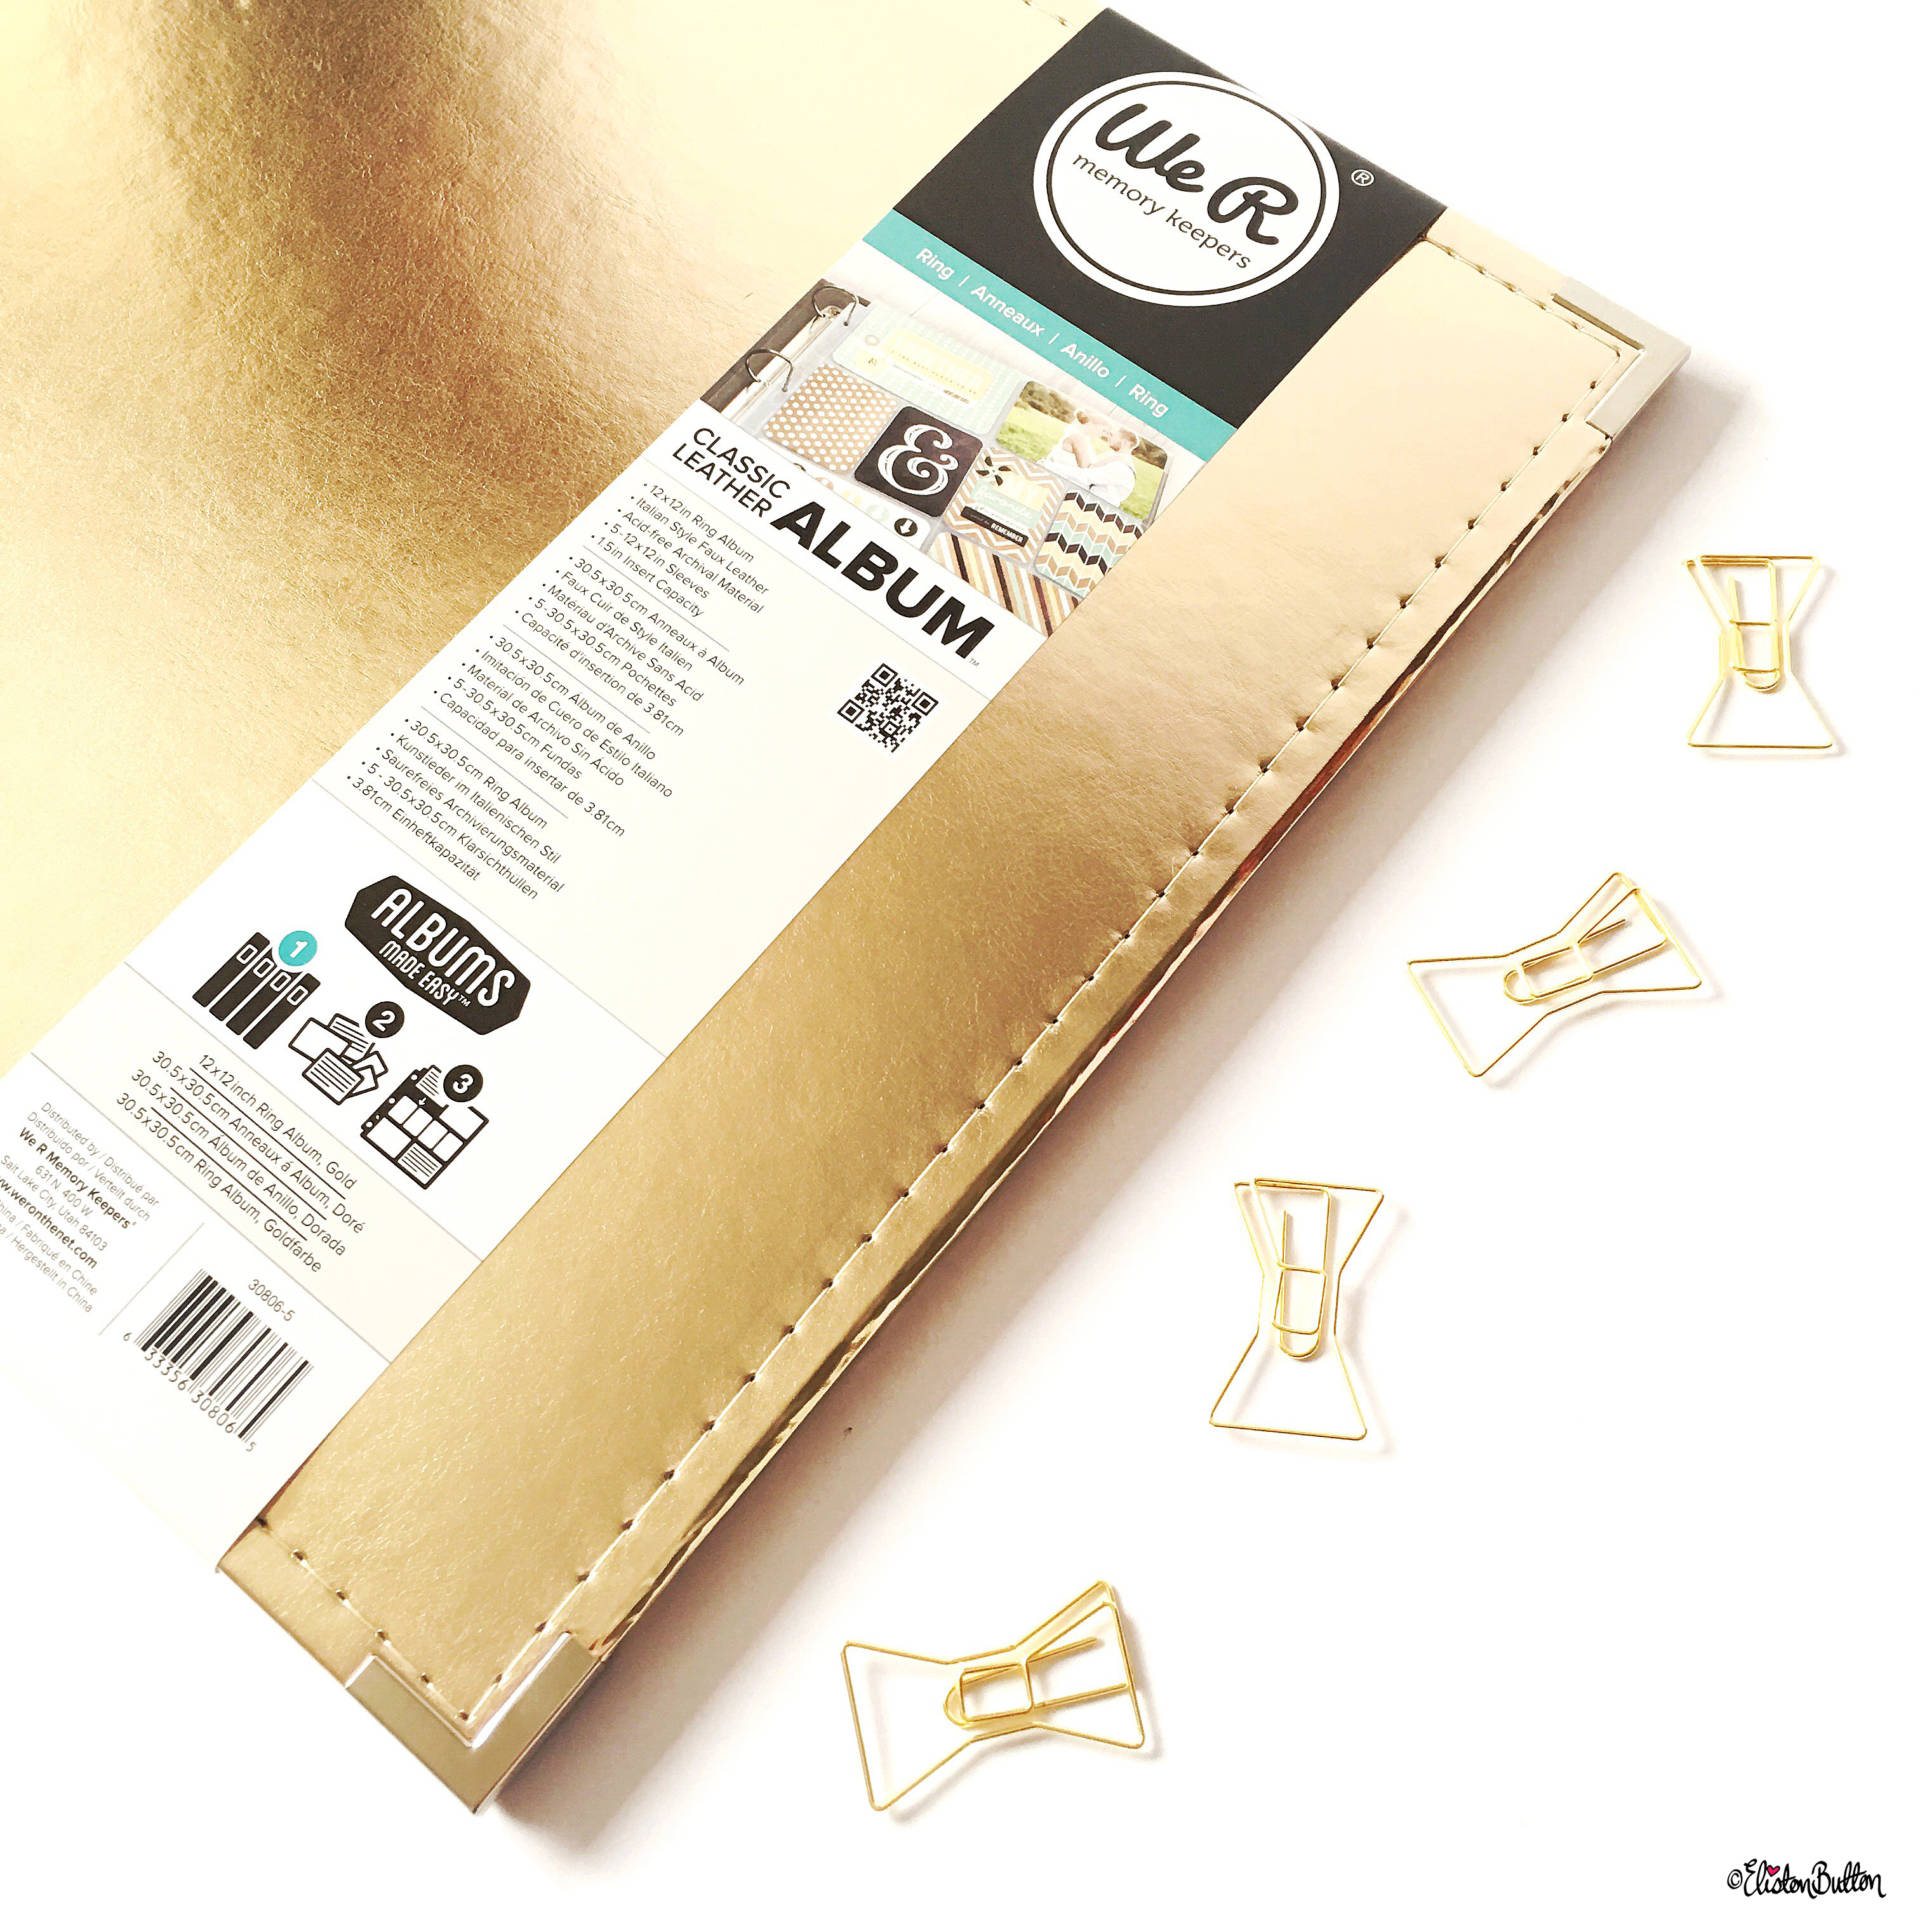 Gold Classic Leather We R Memory Keepers 12x12 Project Life Scrapbook Album - Around Here…August 2016 at www.elistonbutton.com - Eliston Button - That Crafty Kid – Art, Design, Craft & Adventure.